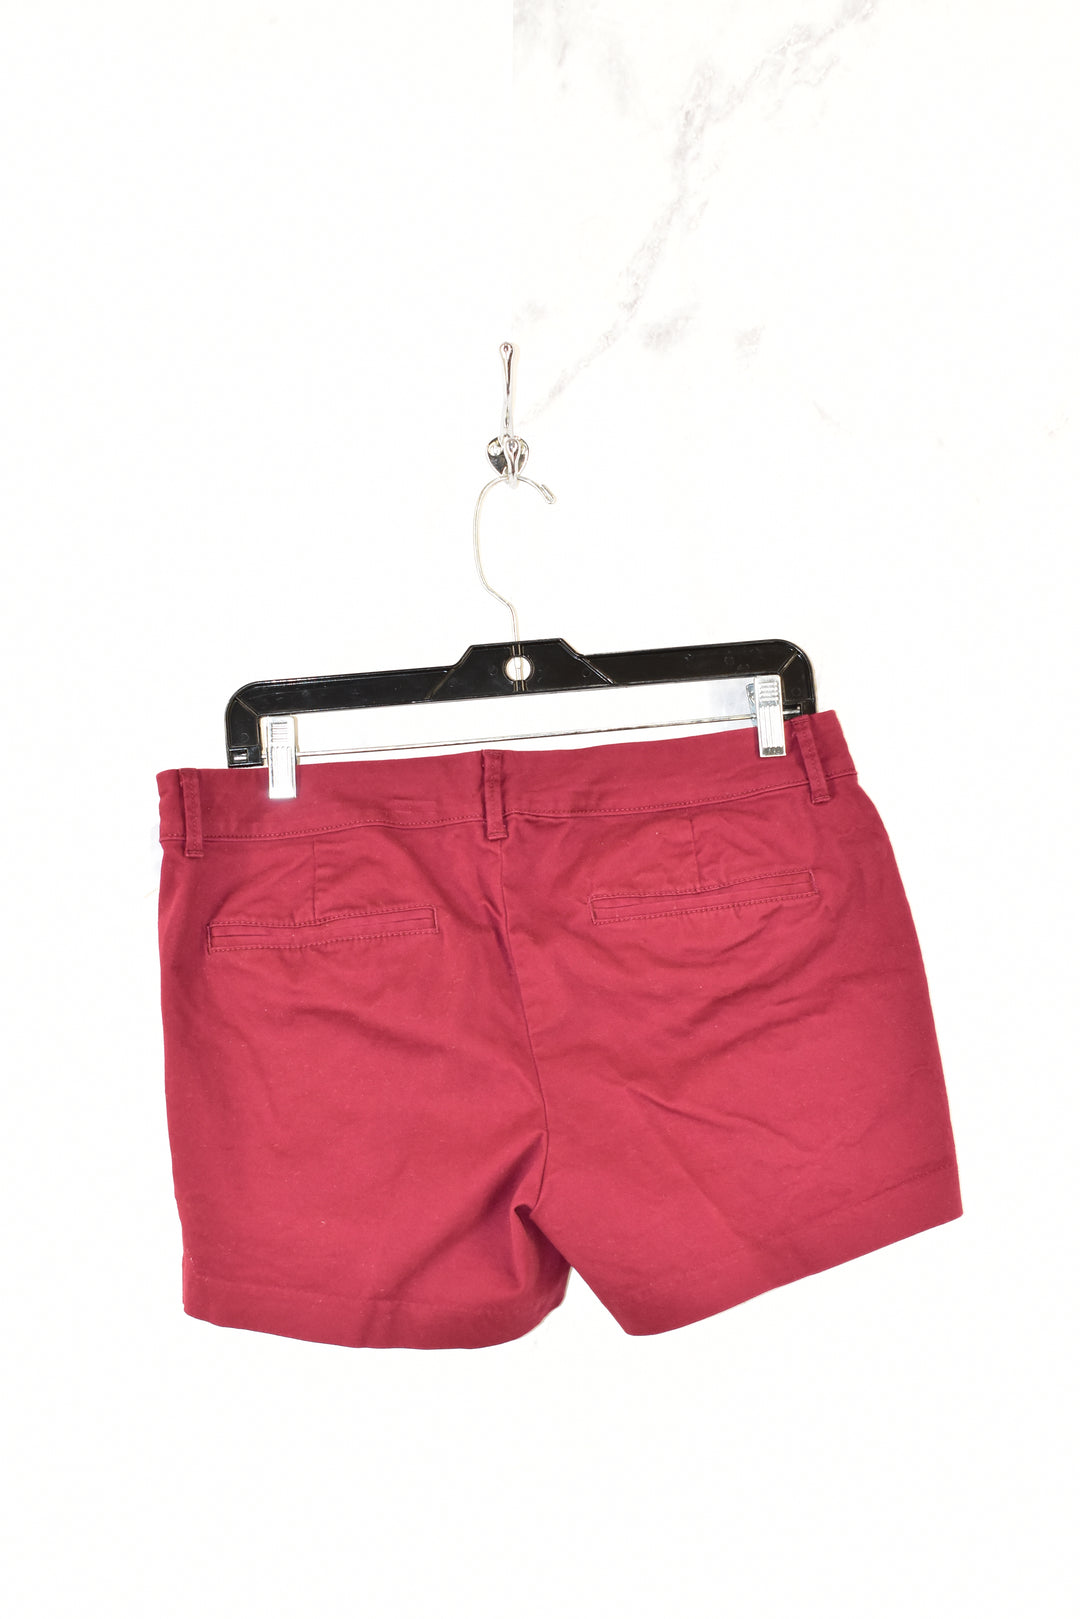 Photo #1 - BRAND: OLD NAVY <BR>STYLE: SHORTS <BR>COLOR: RED <BR>SIZE: 8 <BR>SKU: 186-186200-1236